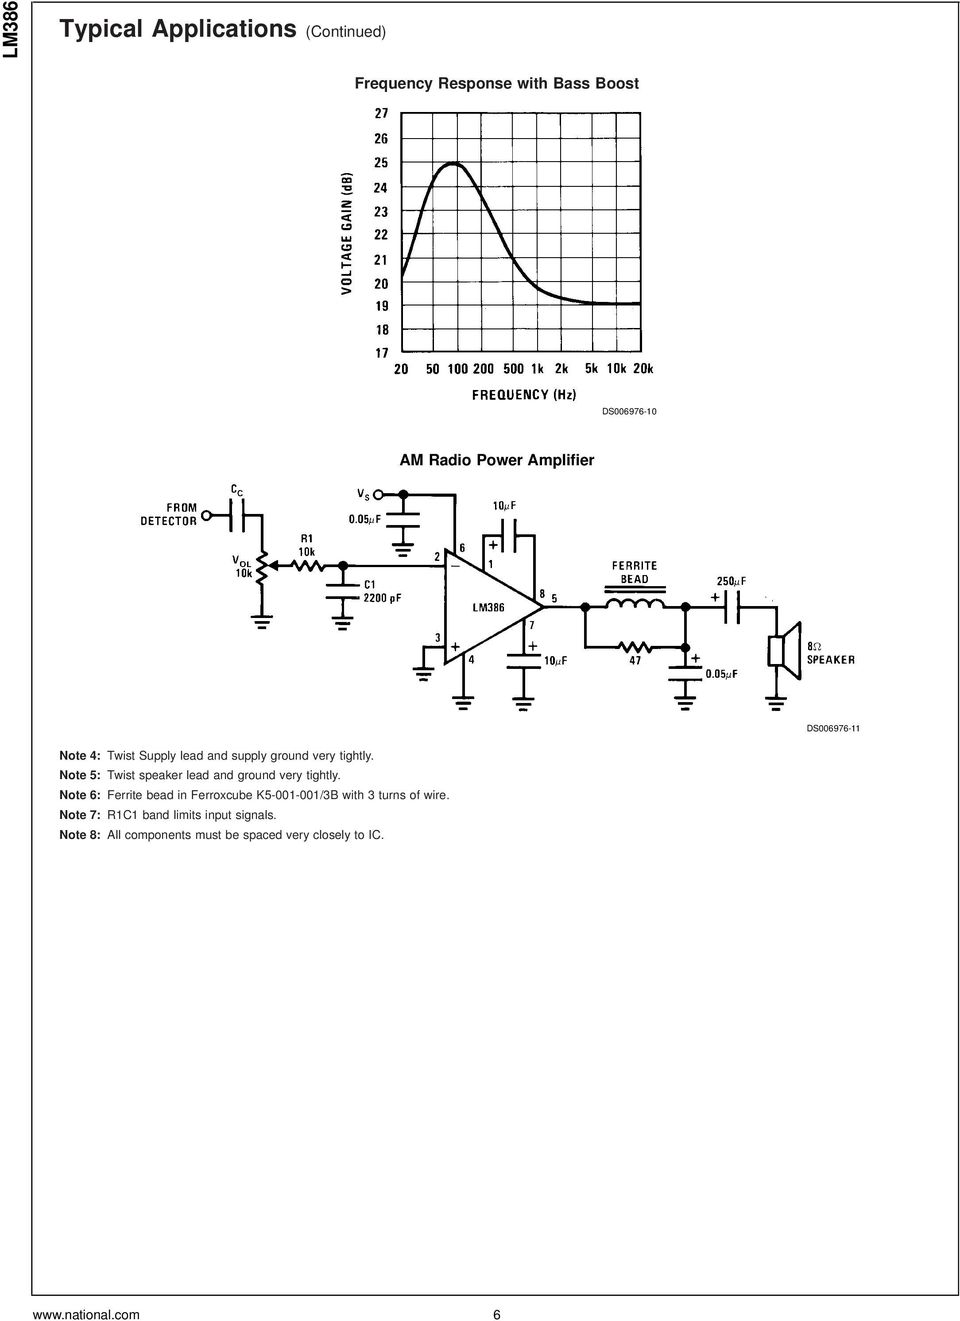 Lm386 Low Voltage Audio Power Amplifier Pdf Circuit Preamplifier Integrated Lm358 Dual Op Amp Note 5 Twist Speaker Lead And Ground Very Tightly